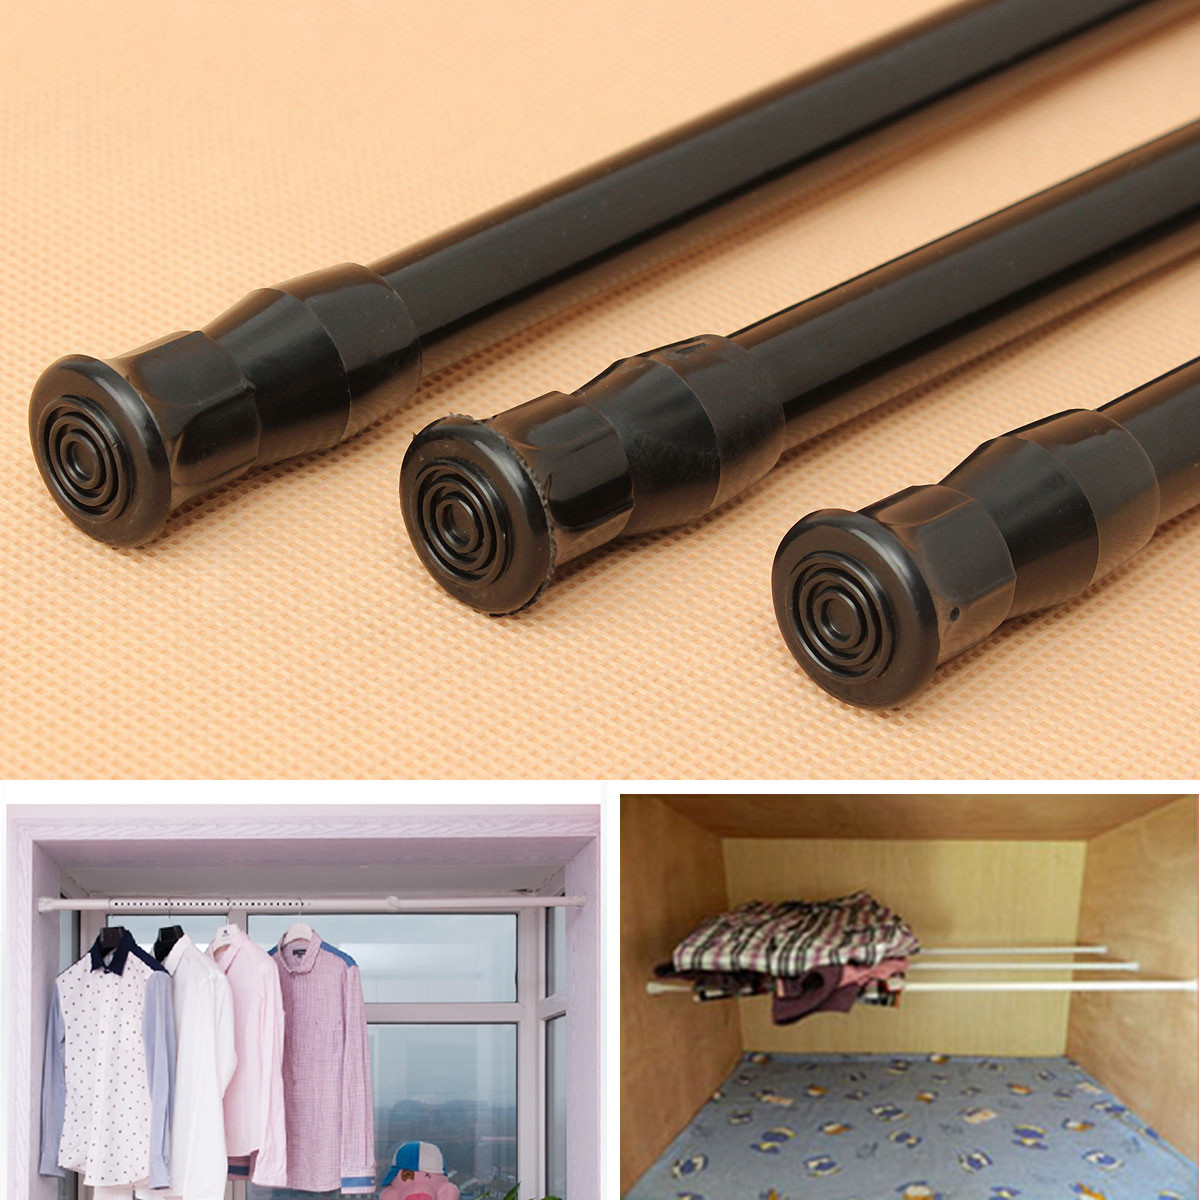 decorators p store l spring oil sets tension rubbed rods home sku rod collection bronze curtain in